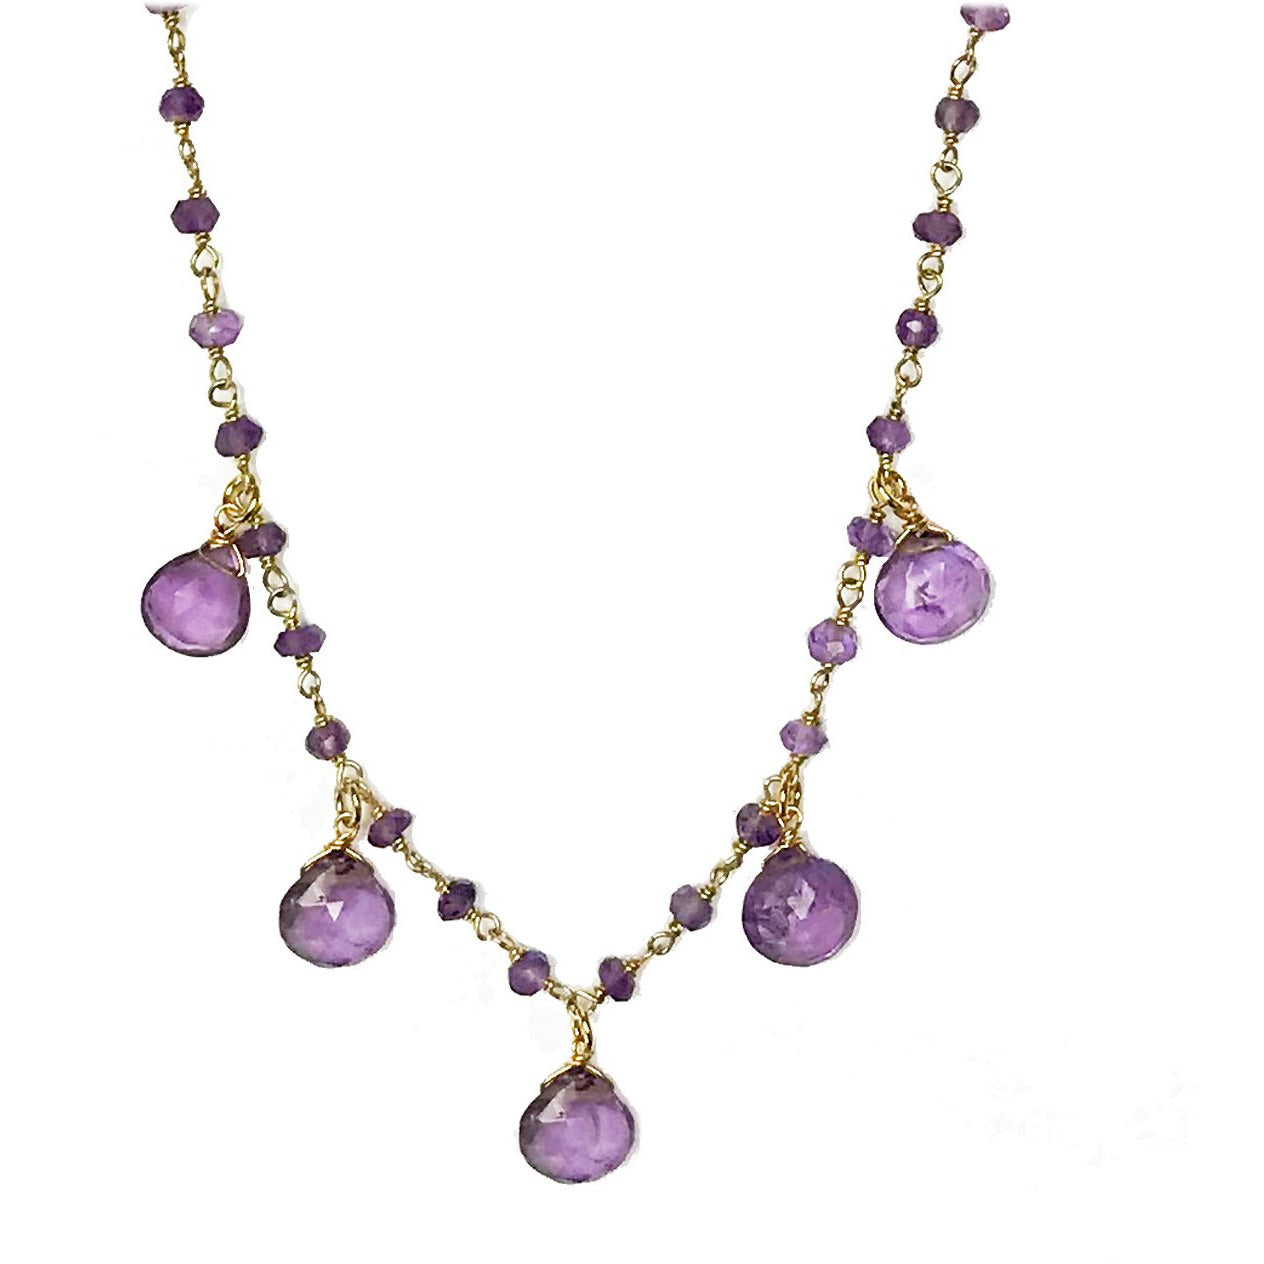 Amethyst Droplet Necklace - 14k Gold Vermeil - Miraposa